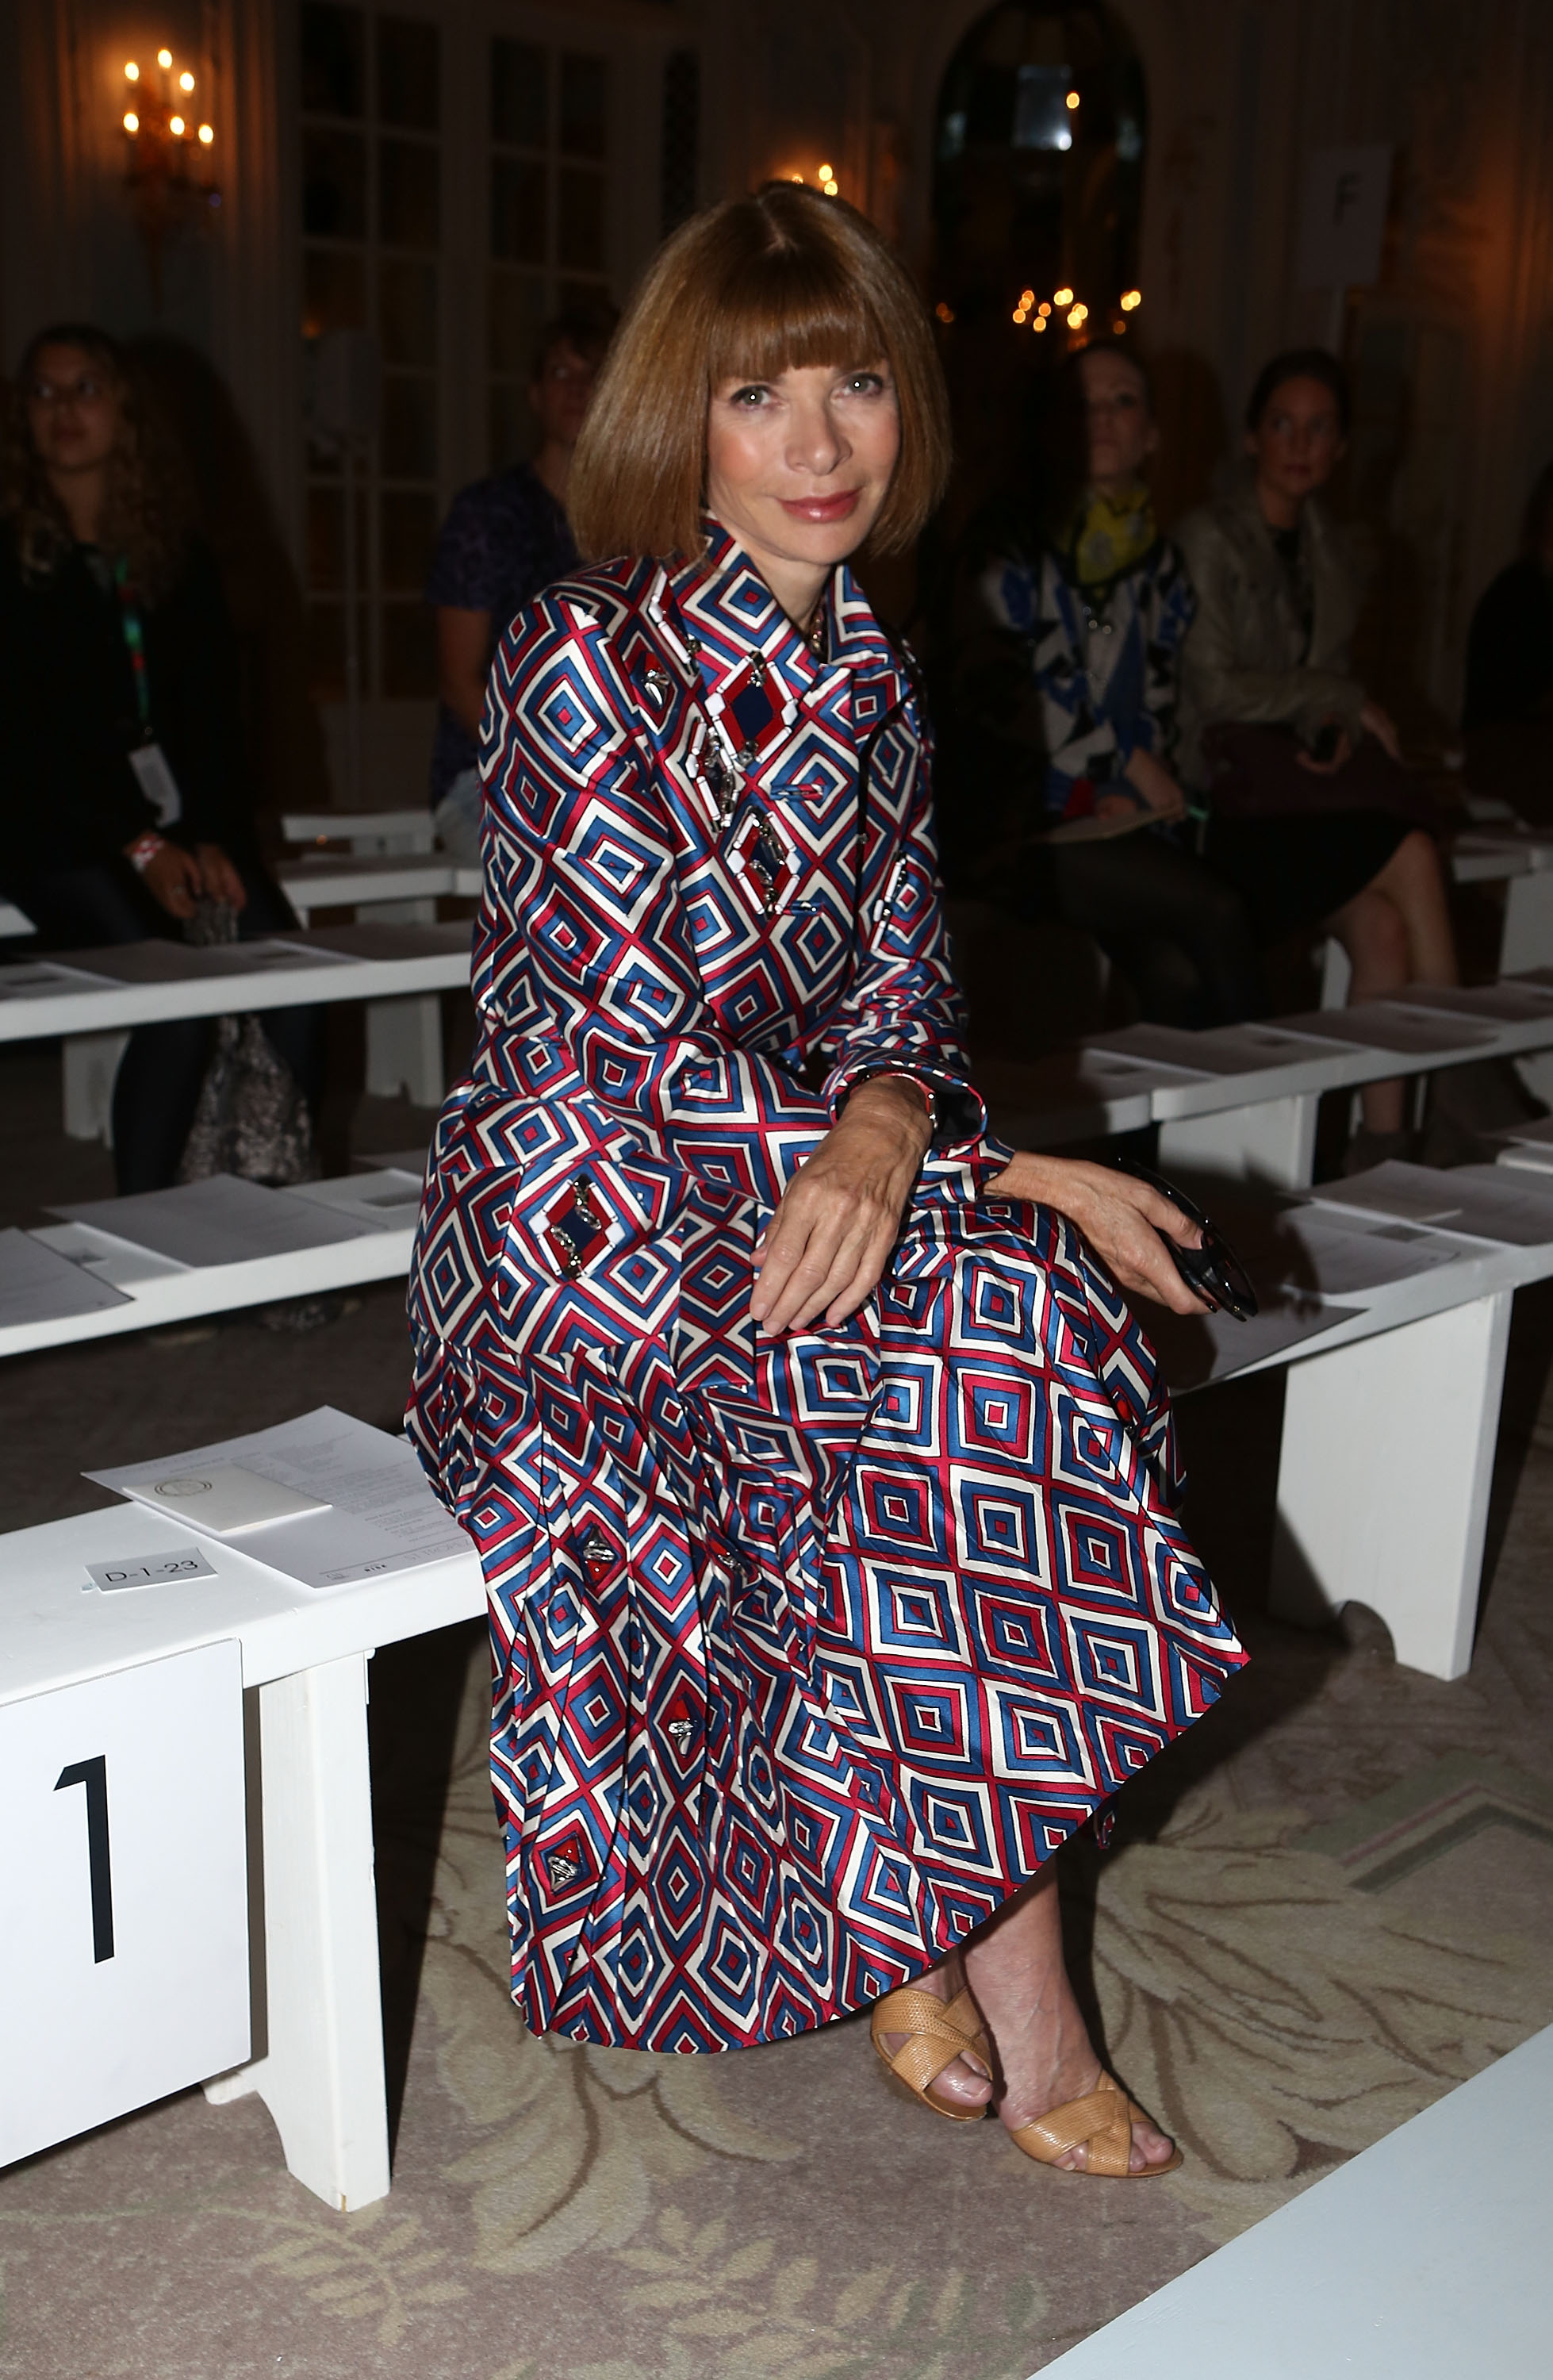 Anna Wintour took front row at Roksanda Ilincic's show at London Fashion Week in a geometric-print coat dress.